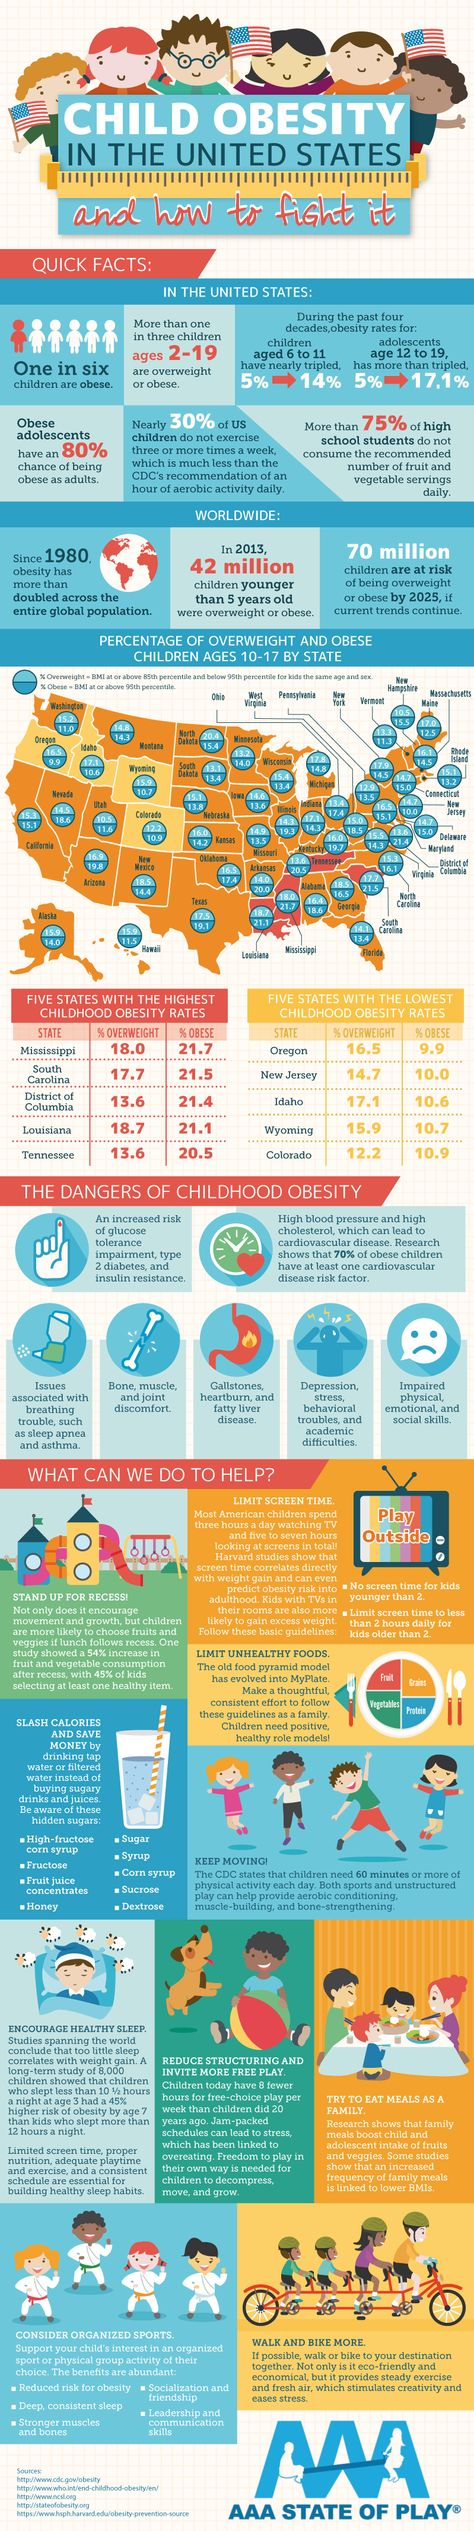 childhood obesity and how its promoted Like it or not, childhood obesity is one of the fast-rising epidemics in the united states today know more about this most unfortunate condition.